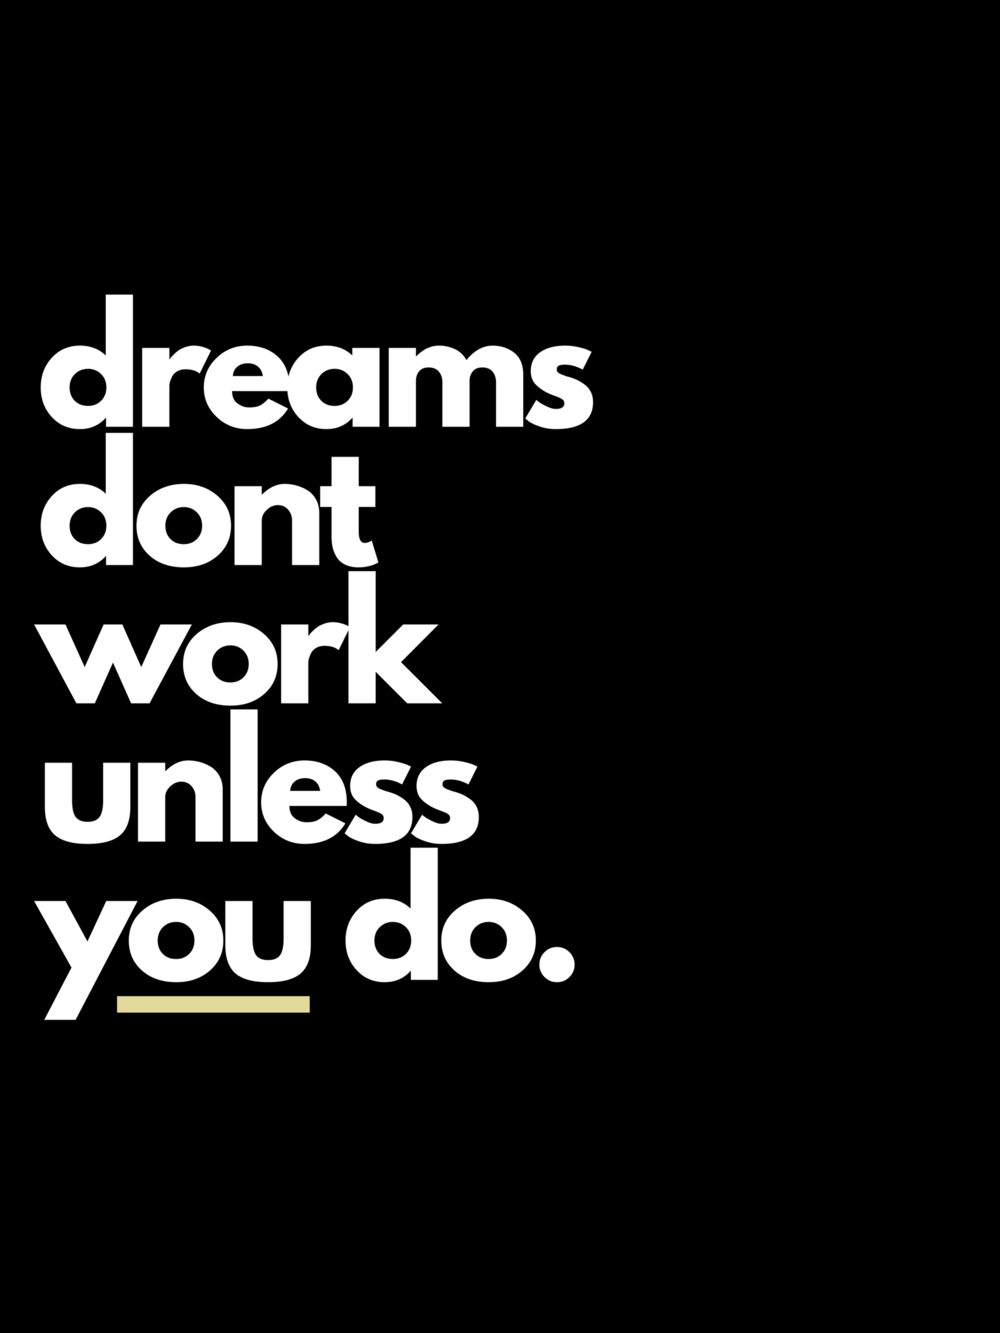 Dreams_don_t_work_unless_you_do(black).png